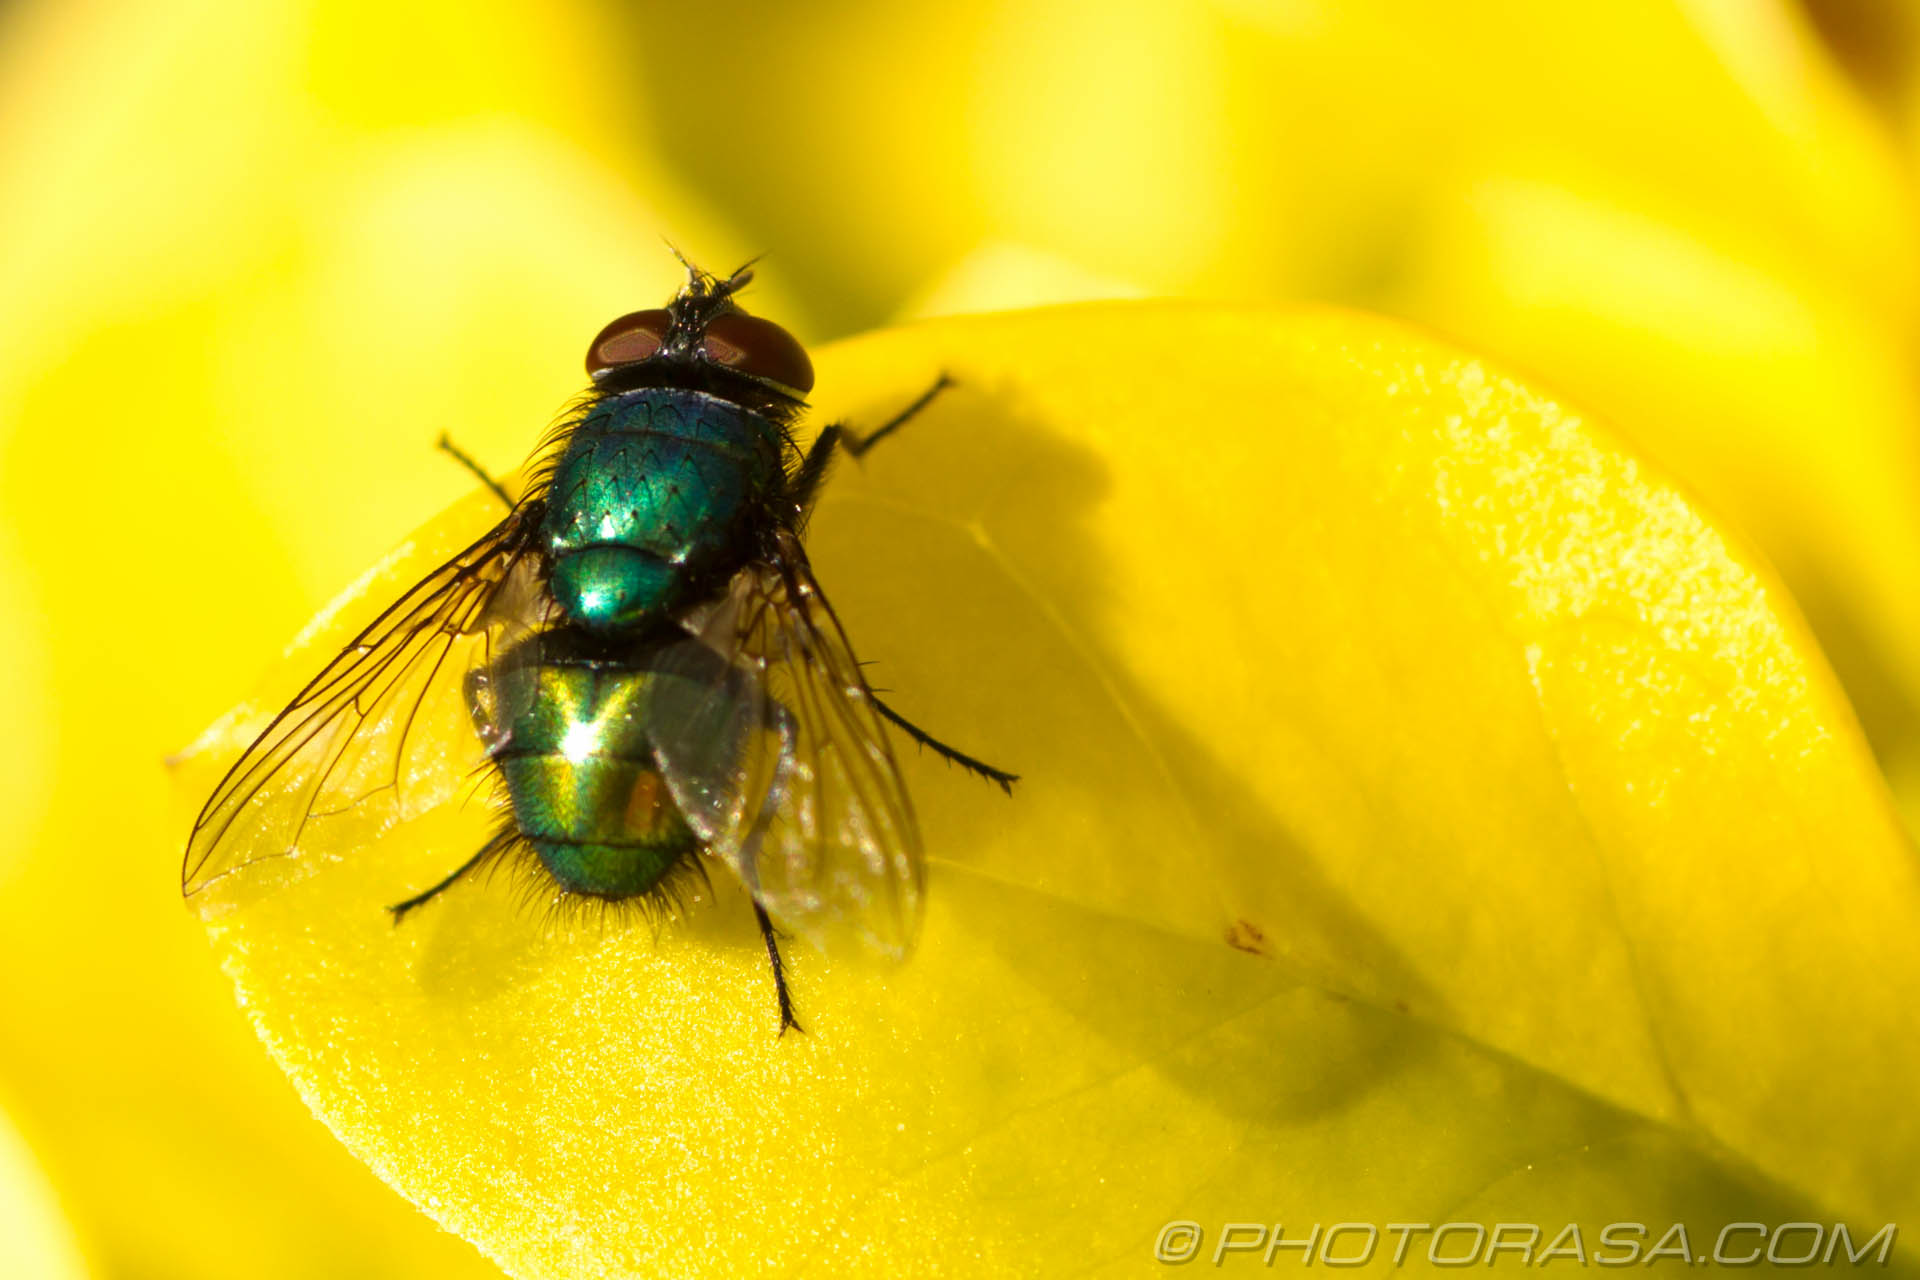 https://photorasa.com/greenbottle-fly-yellow/greenbottle-on-yellow/